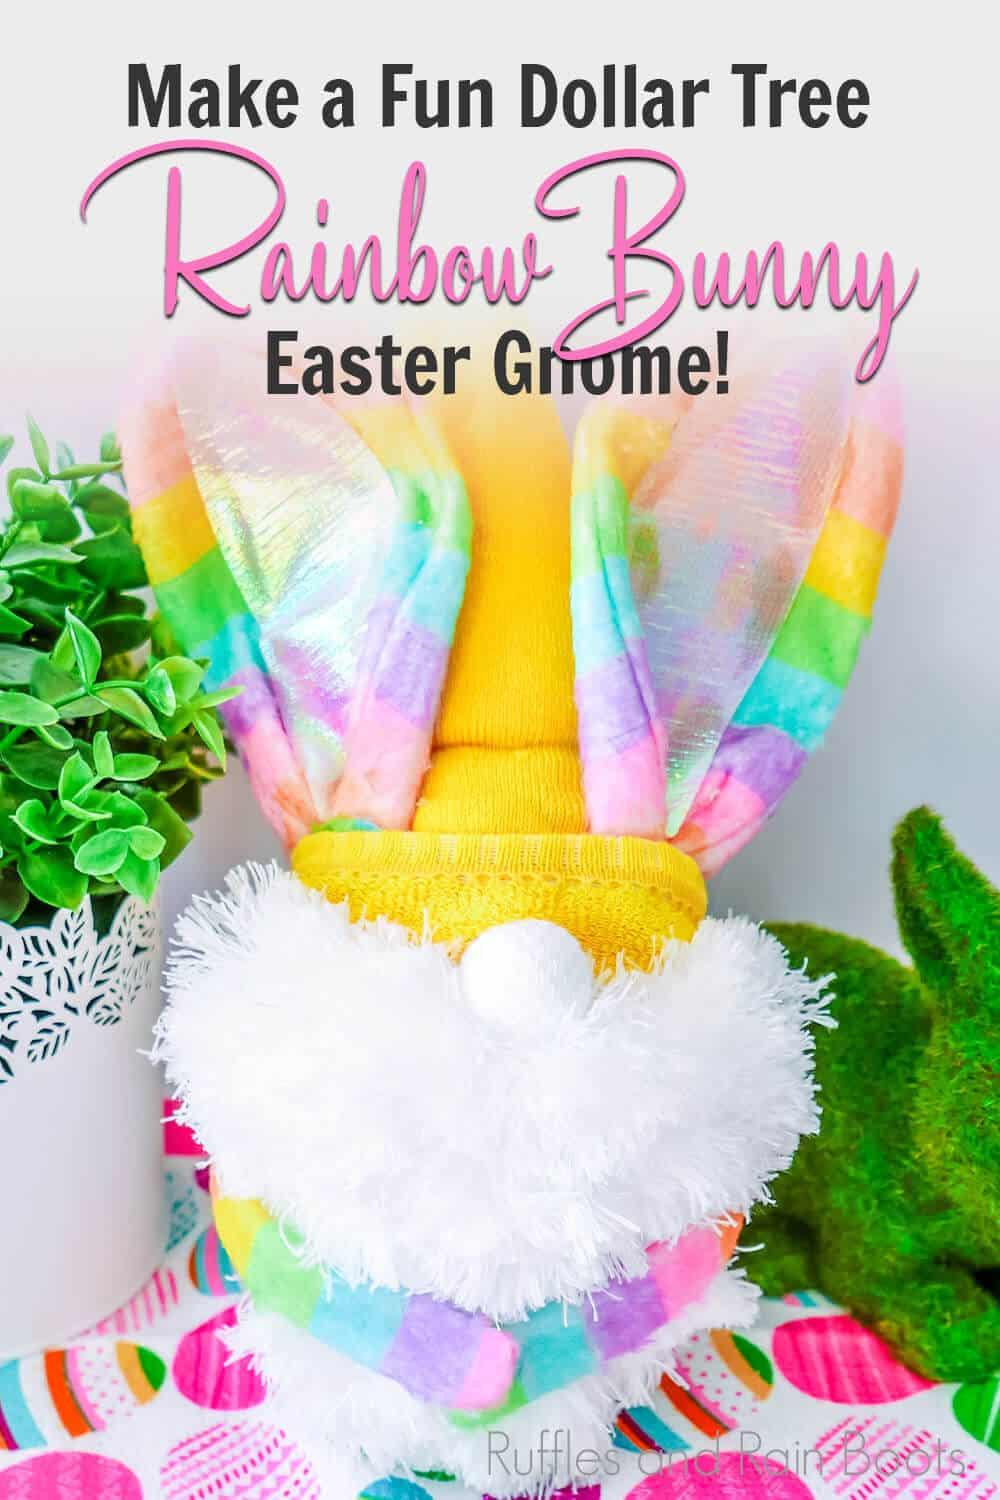 easter dollar tree craft bunny gnome with text which reads make a fun dollar tree rainbow bunny easter gnome!